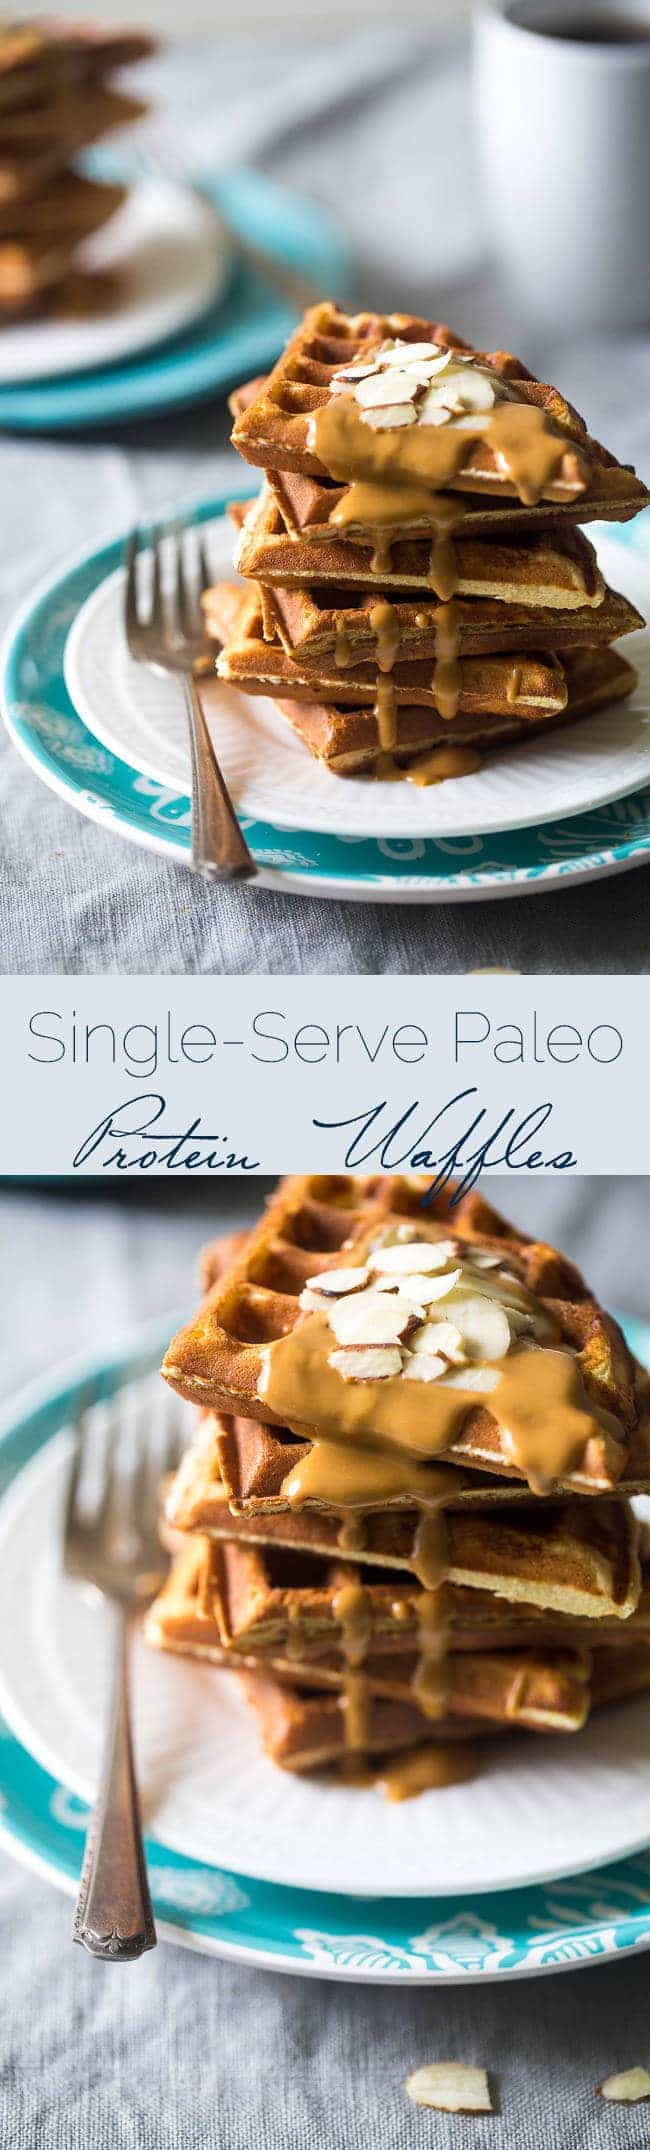 Paleo Protein Waffles - Single serve, packed with protein, and are ready in 5 minutes so you can have healthy. gluten free waffles any day of the week! | Foodfaithfitness.com | @FoodFaithFit